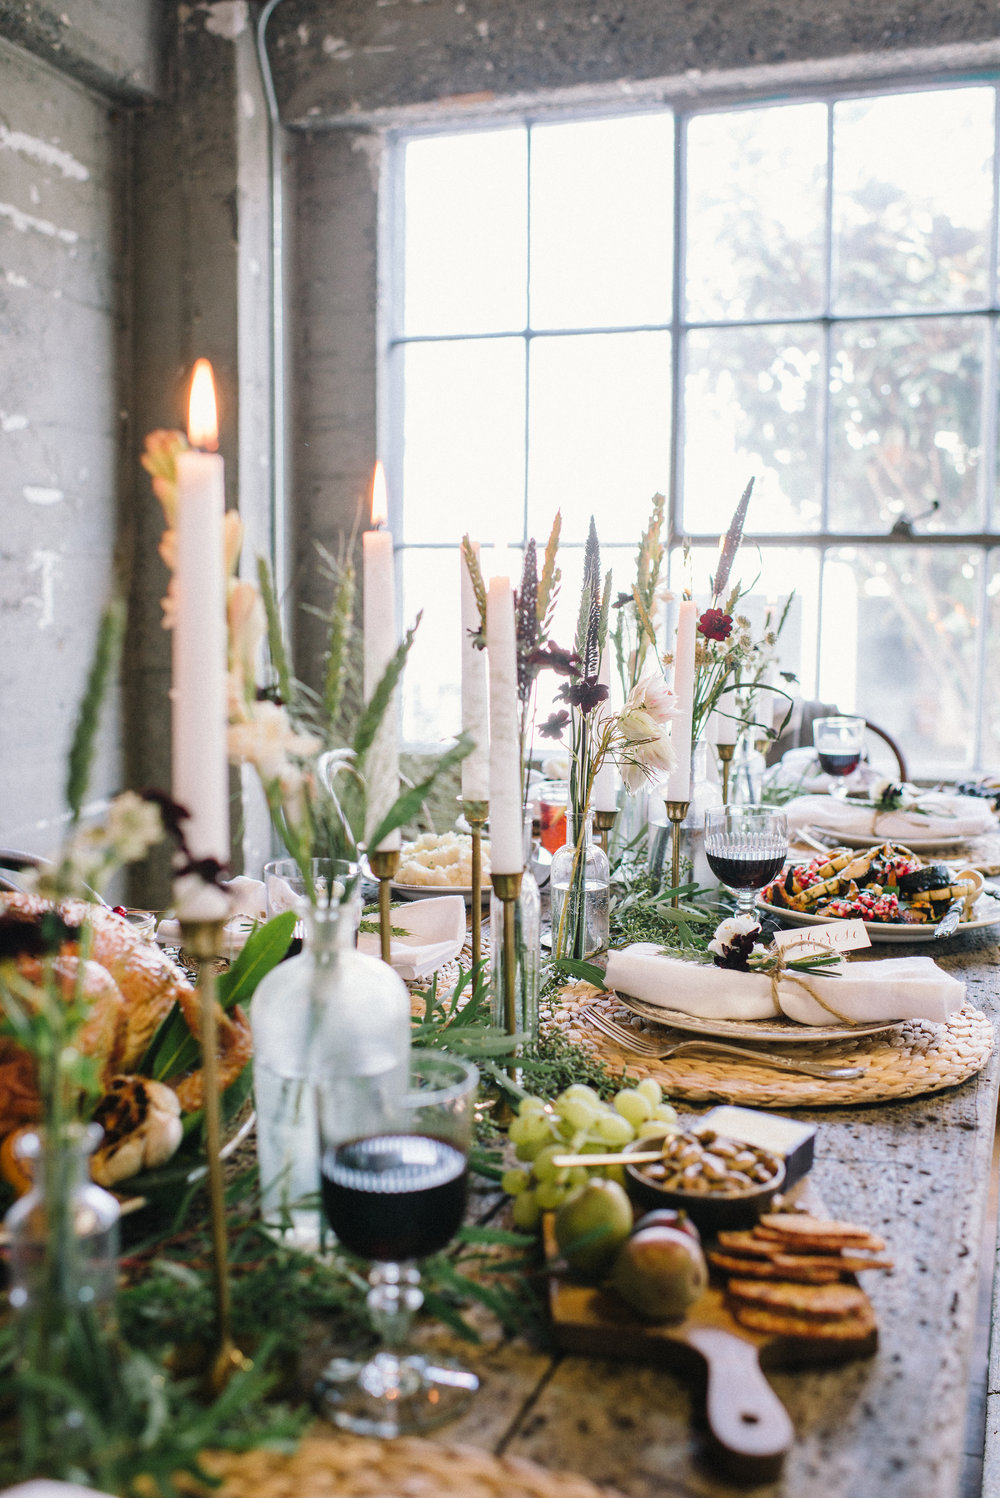 Pinterest inspiration, fall inspiration, winter warmers, loaf pinterest, interiors pinterest, winter table, table styling,table design, fall at home